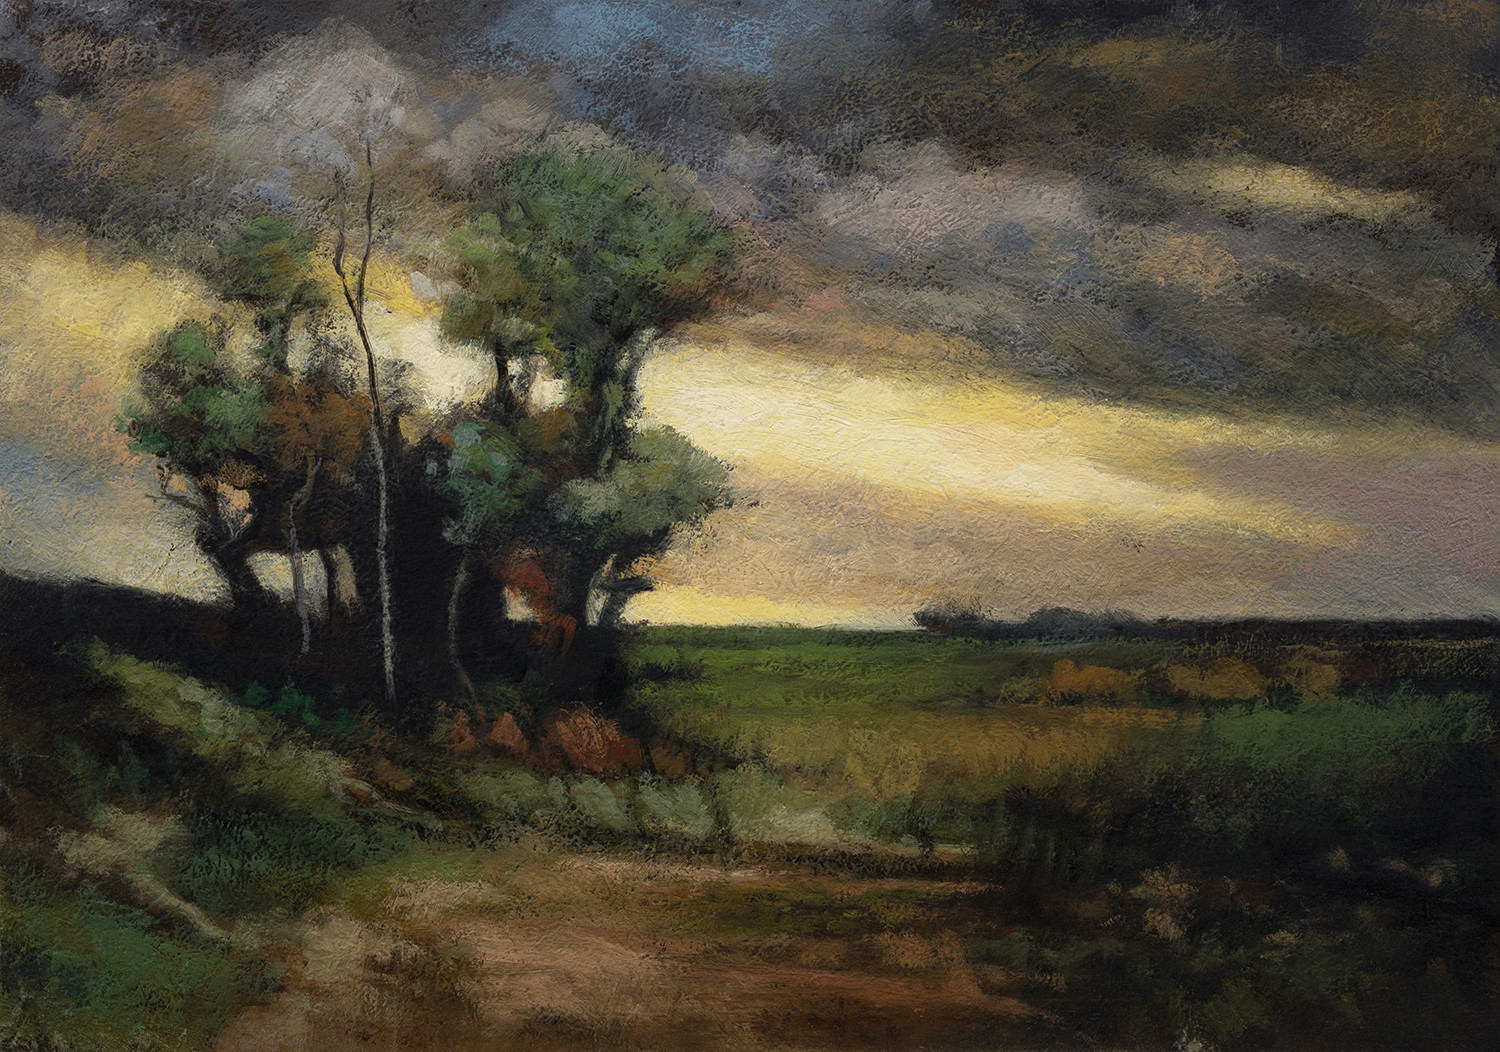 John Francis Murphy Landscape by M Francis McCarthy - 7x10 Oil on Wood Panel